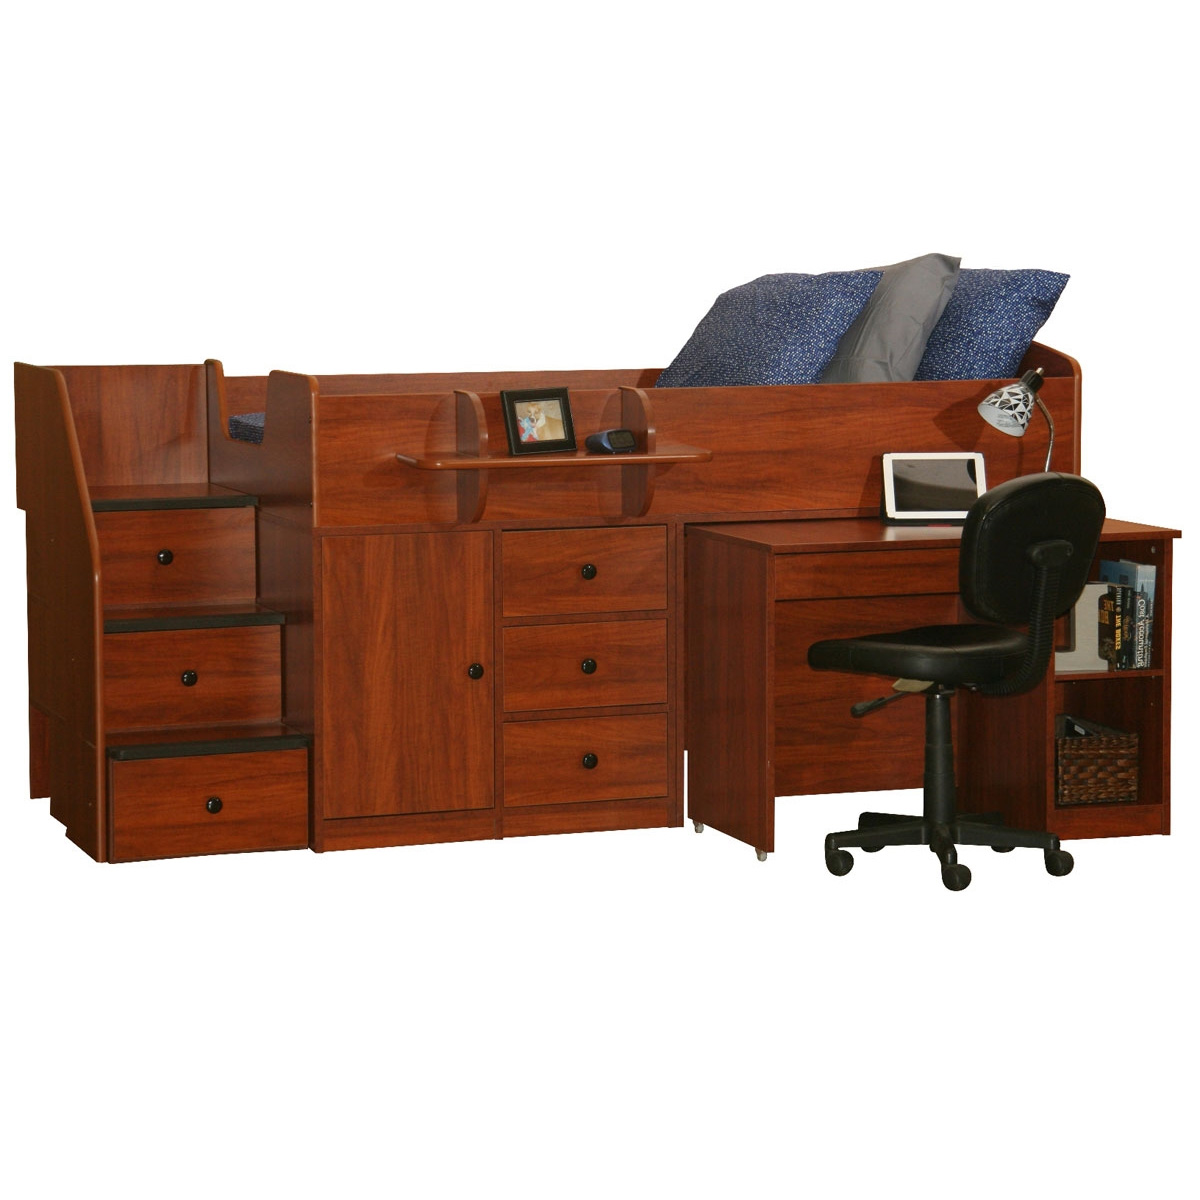 berg furniture sierra twin bed with pullout desk u0026 stairs free shipping - Captain Bed